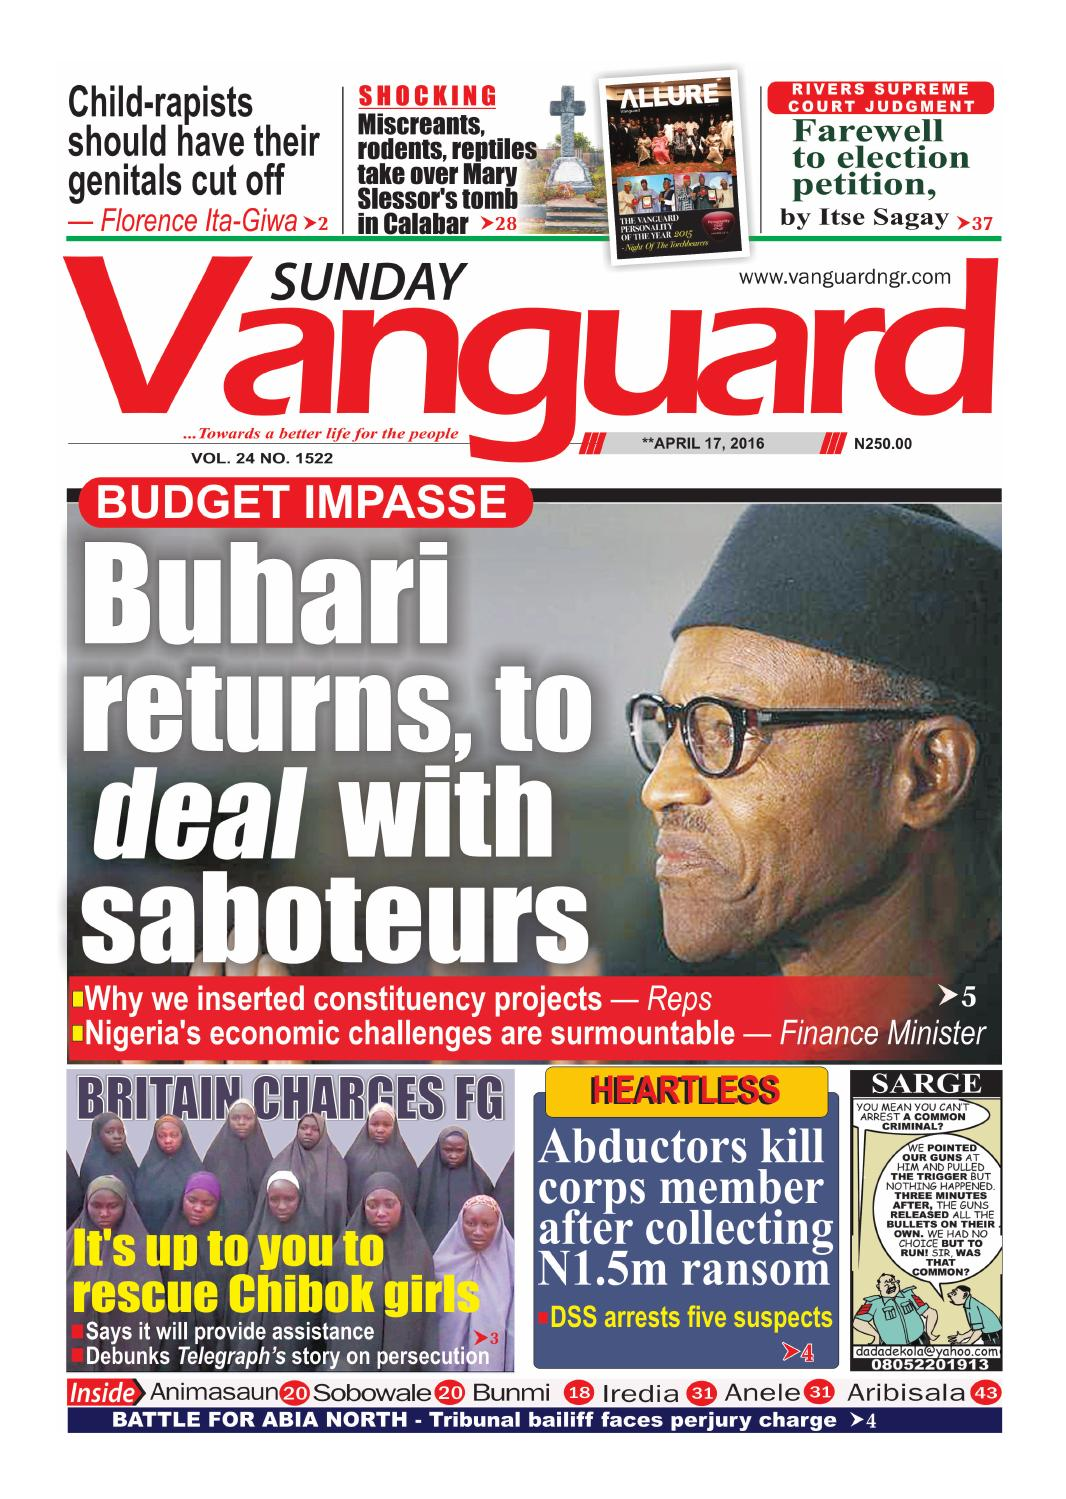 Buhari returns, to deal with saboteurs by Vanguard Media